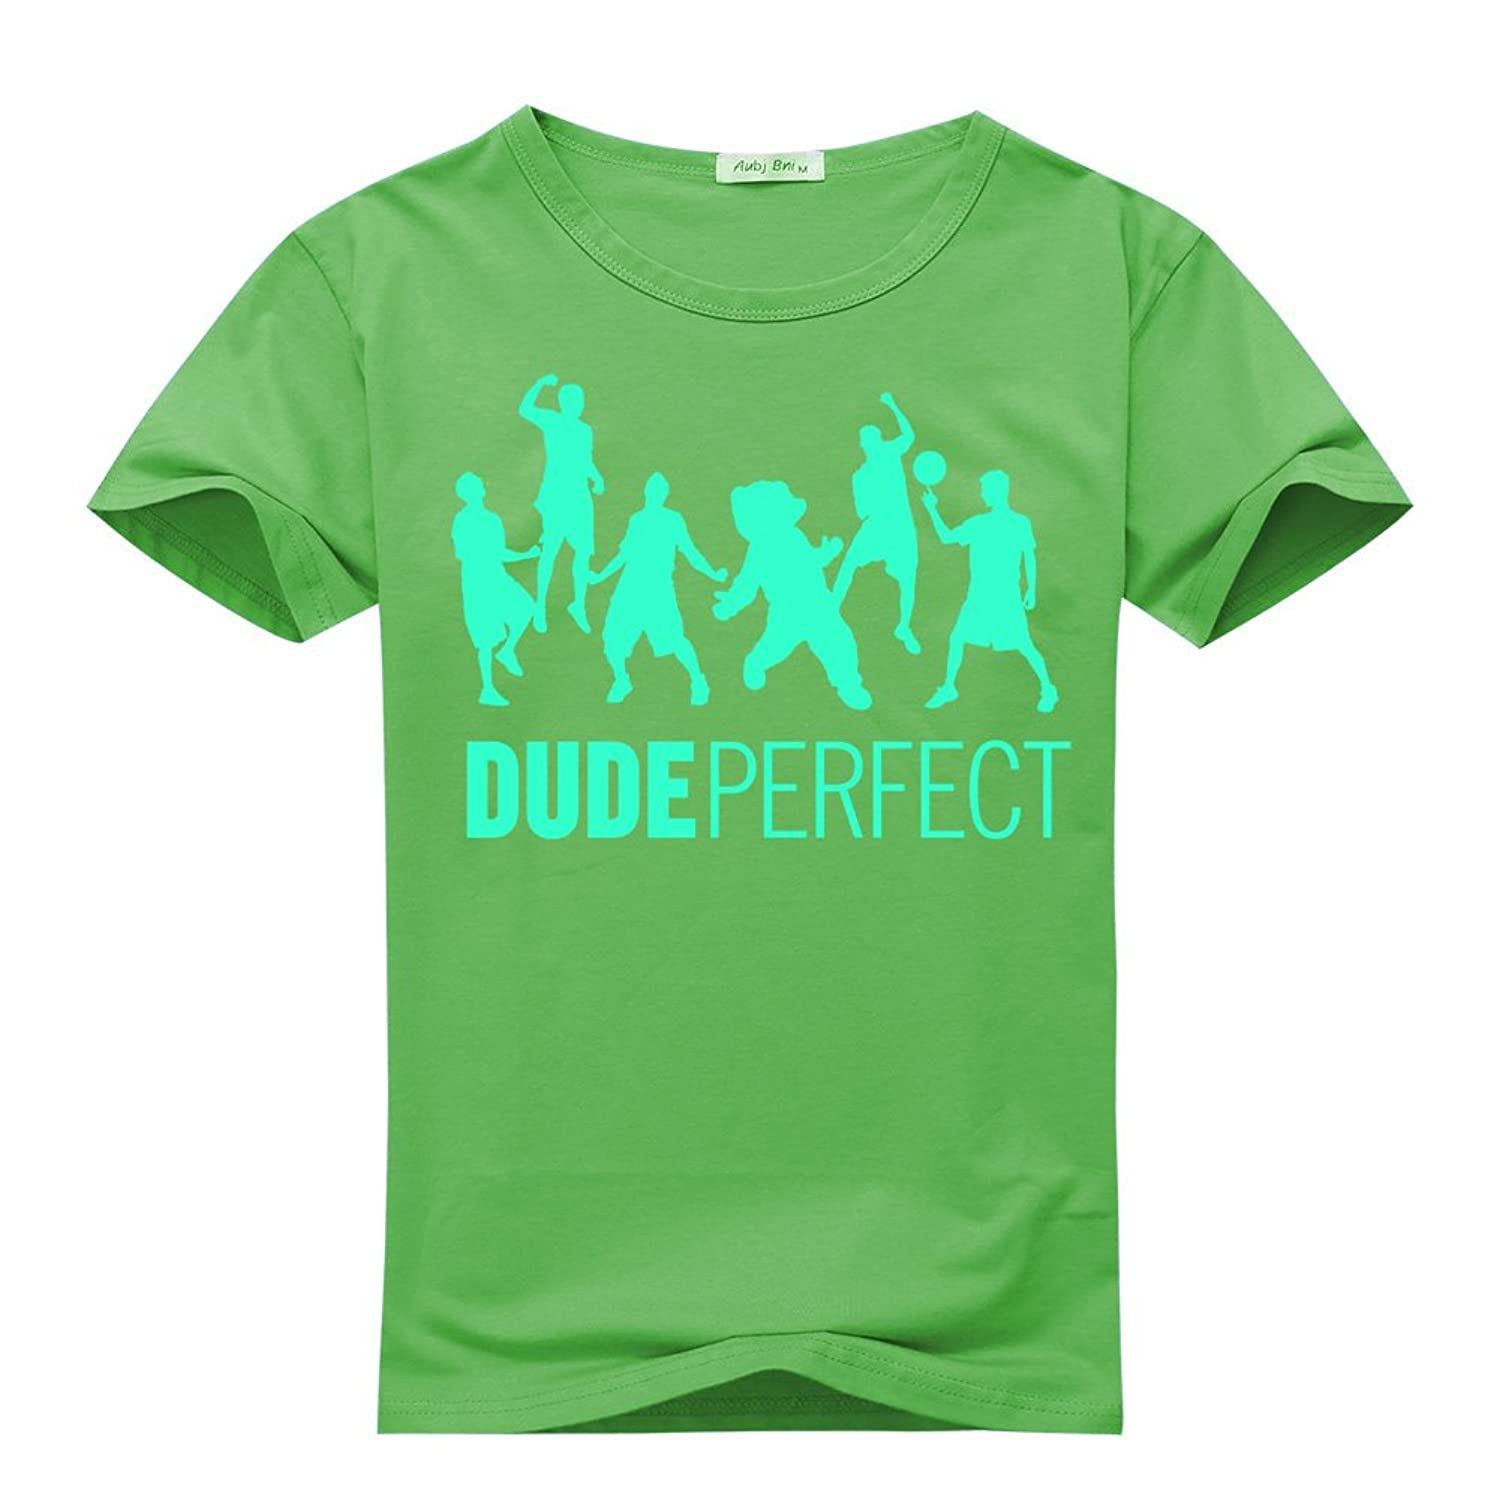 Dude Perfect Action Figure For boys/girls Printed Short Sleeve Tee Tshirt